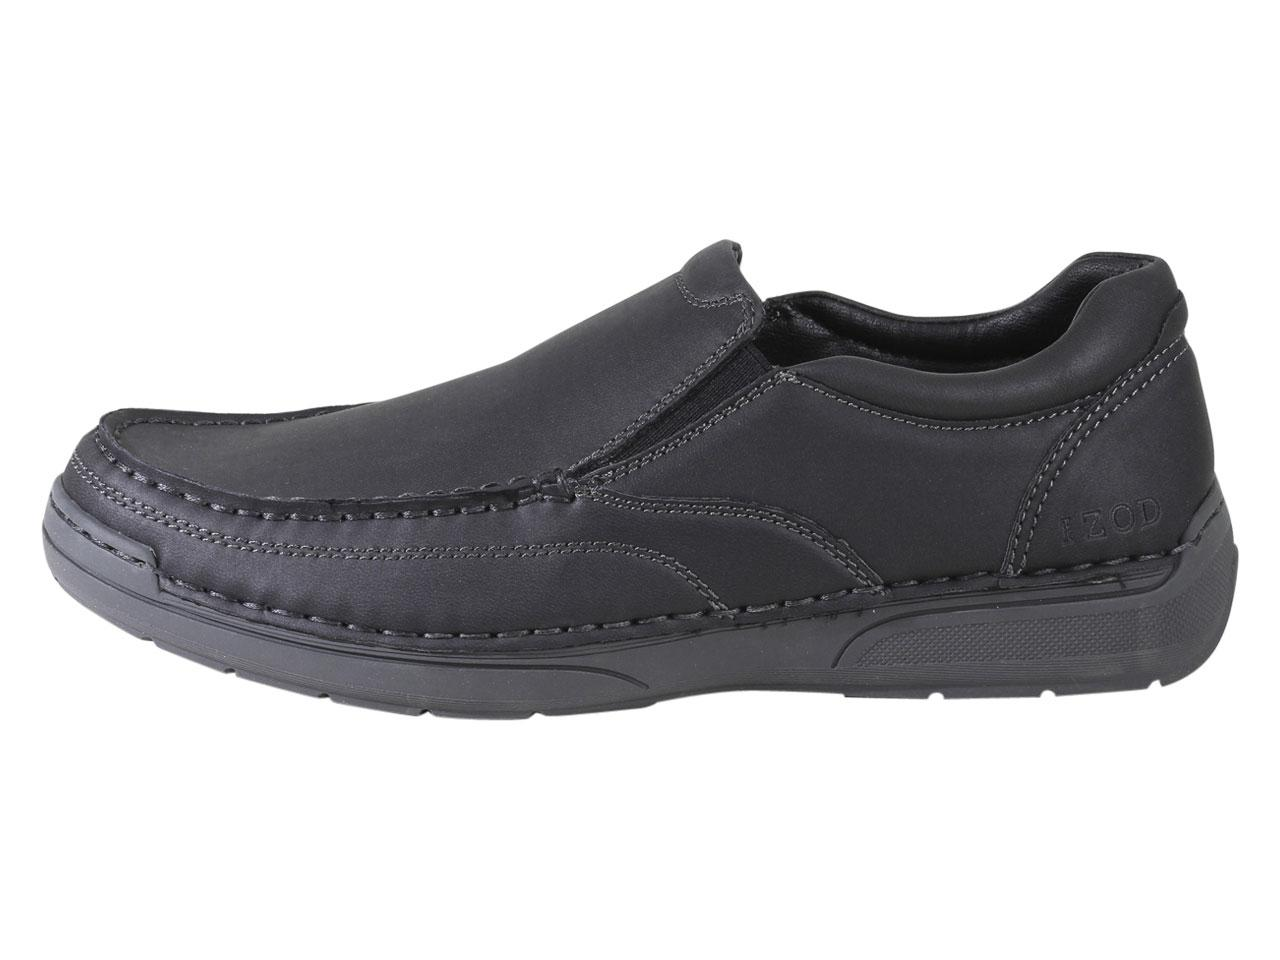 Izod Men/'s Fenway Slip Resistant Memory Foam Loafers Shoes